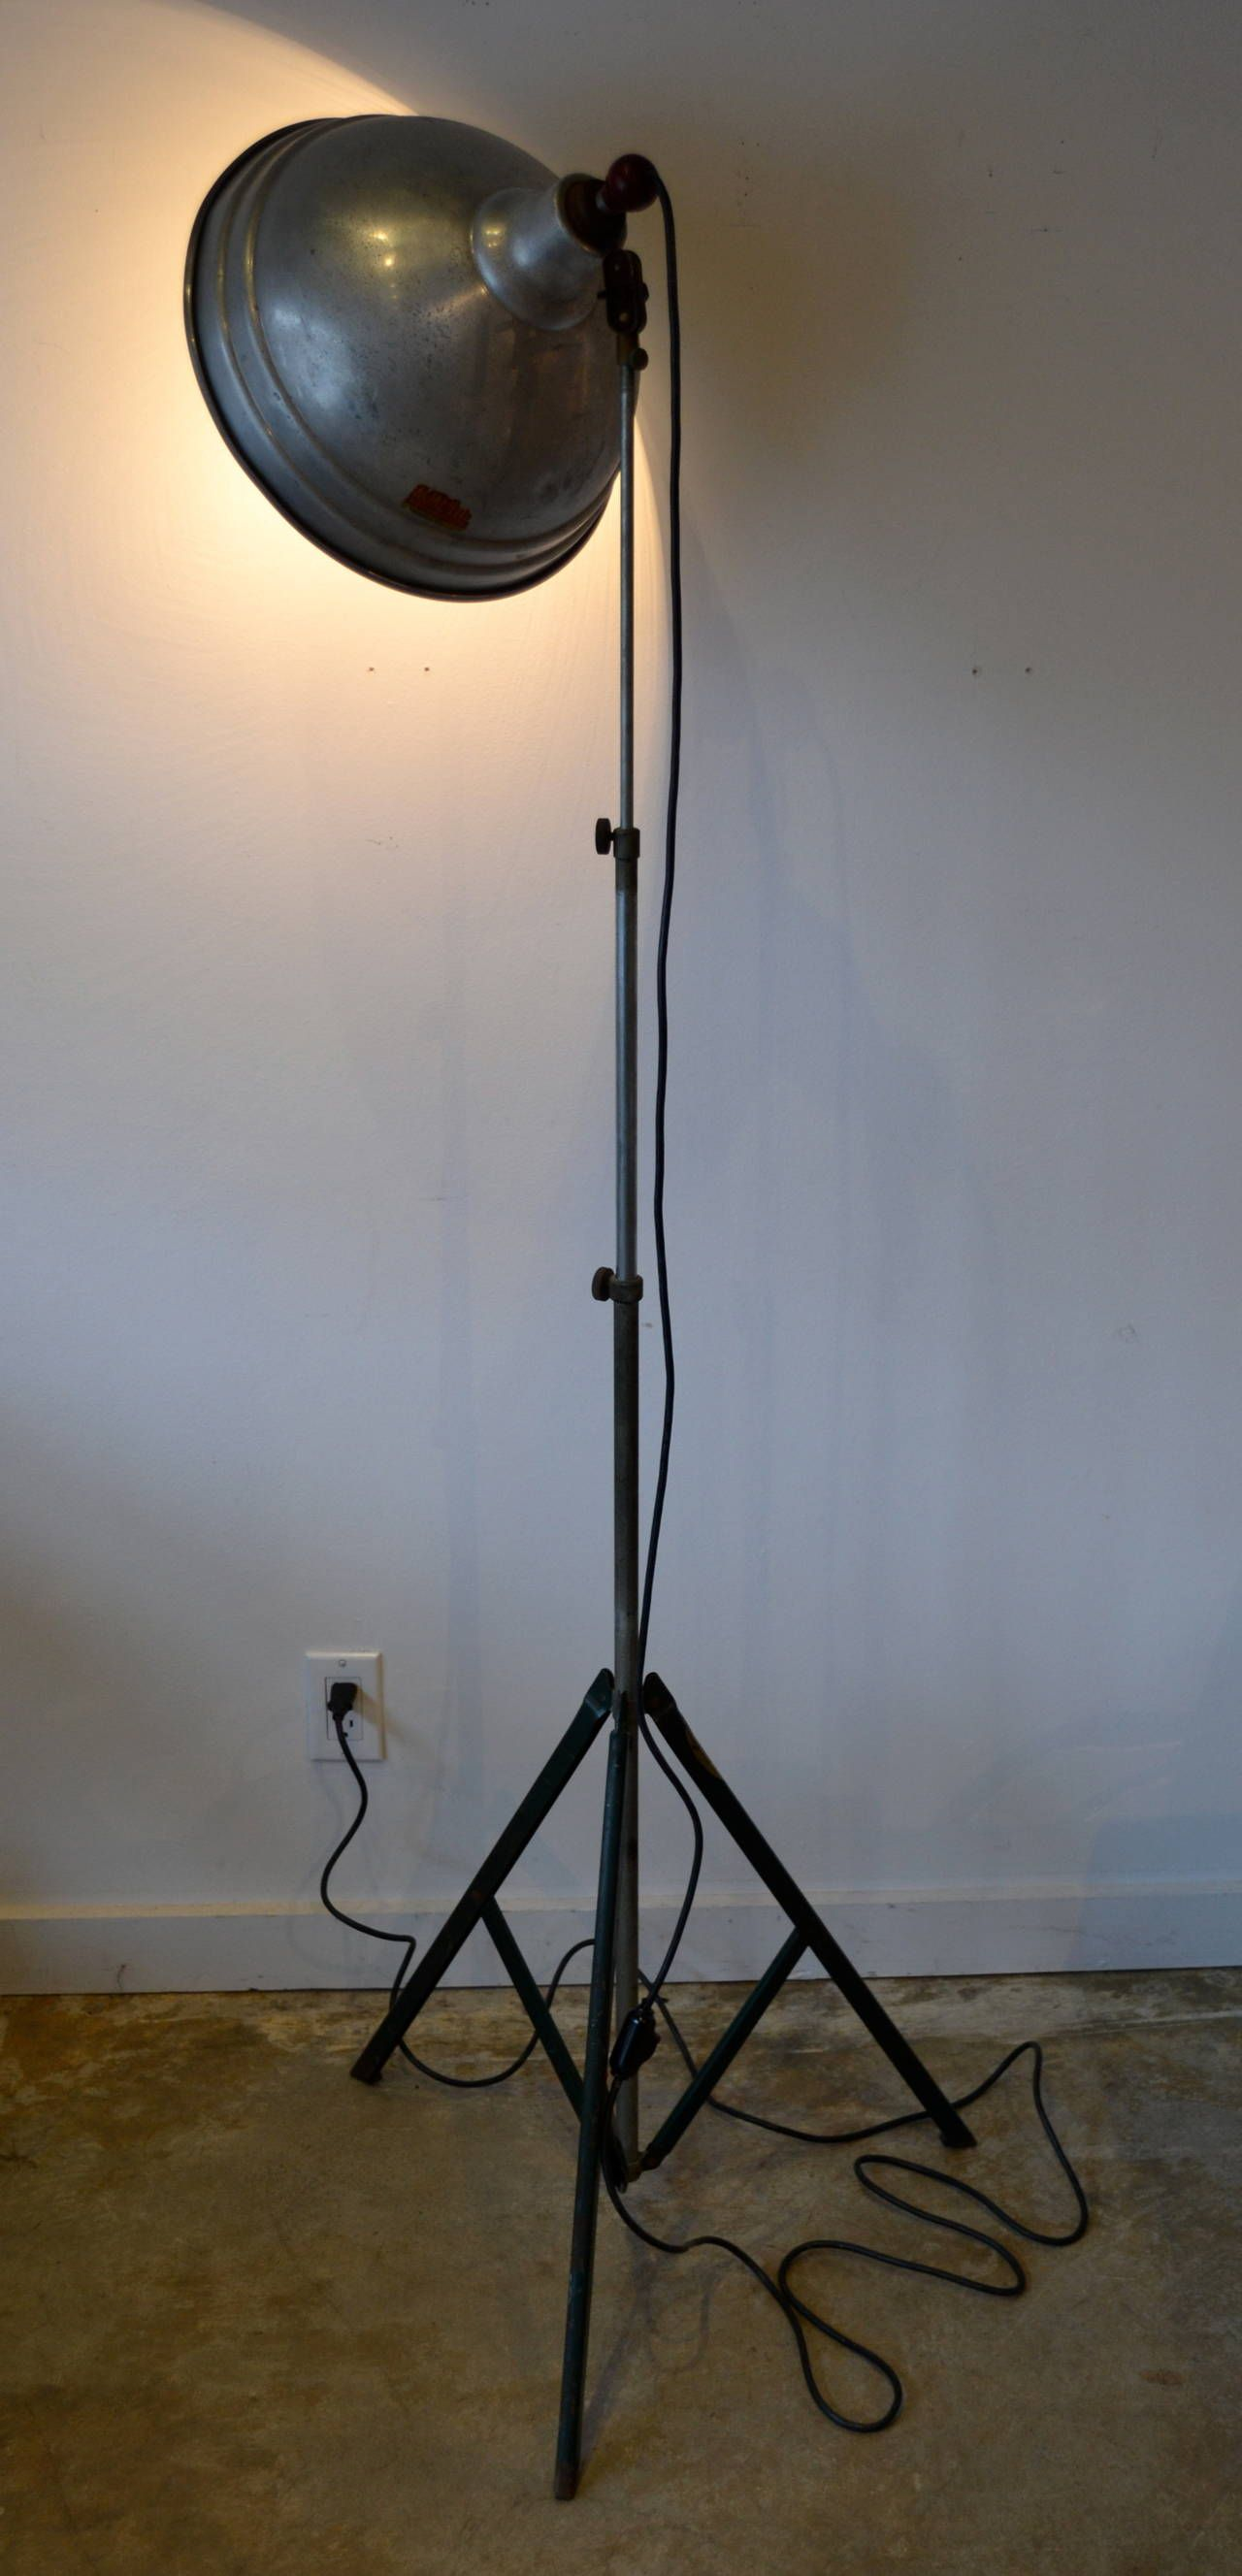 Vintage Industrial Floor Lamp by Acme Lite, USA | From a unique collection of antique and modern floor lamps at https://www.1stdibs.com/furniture/lighting/floor-lamps/